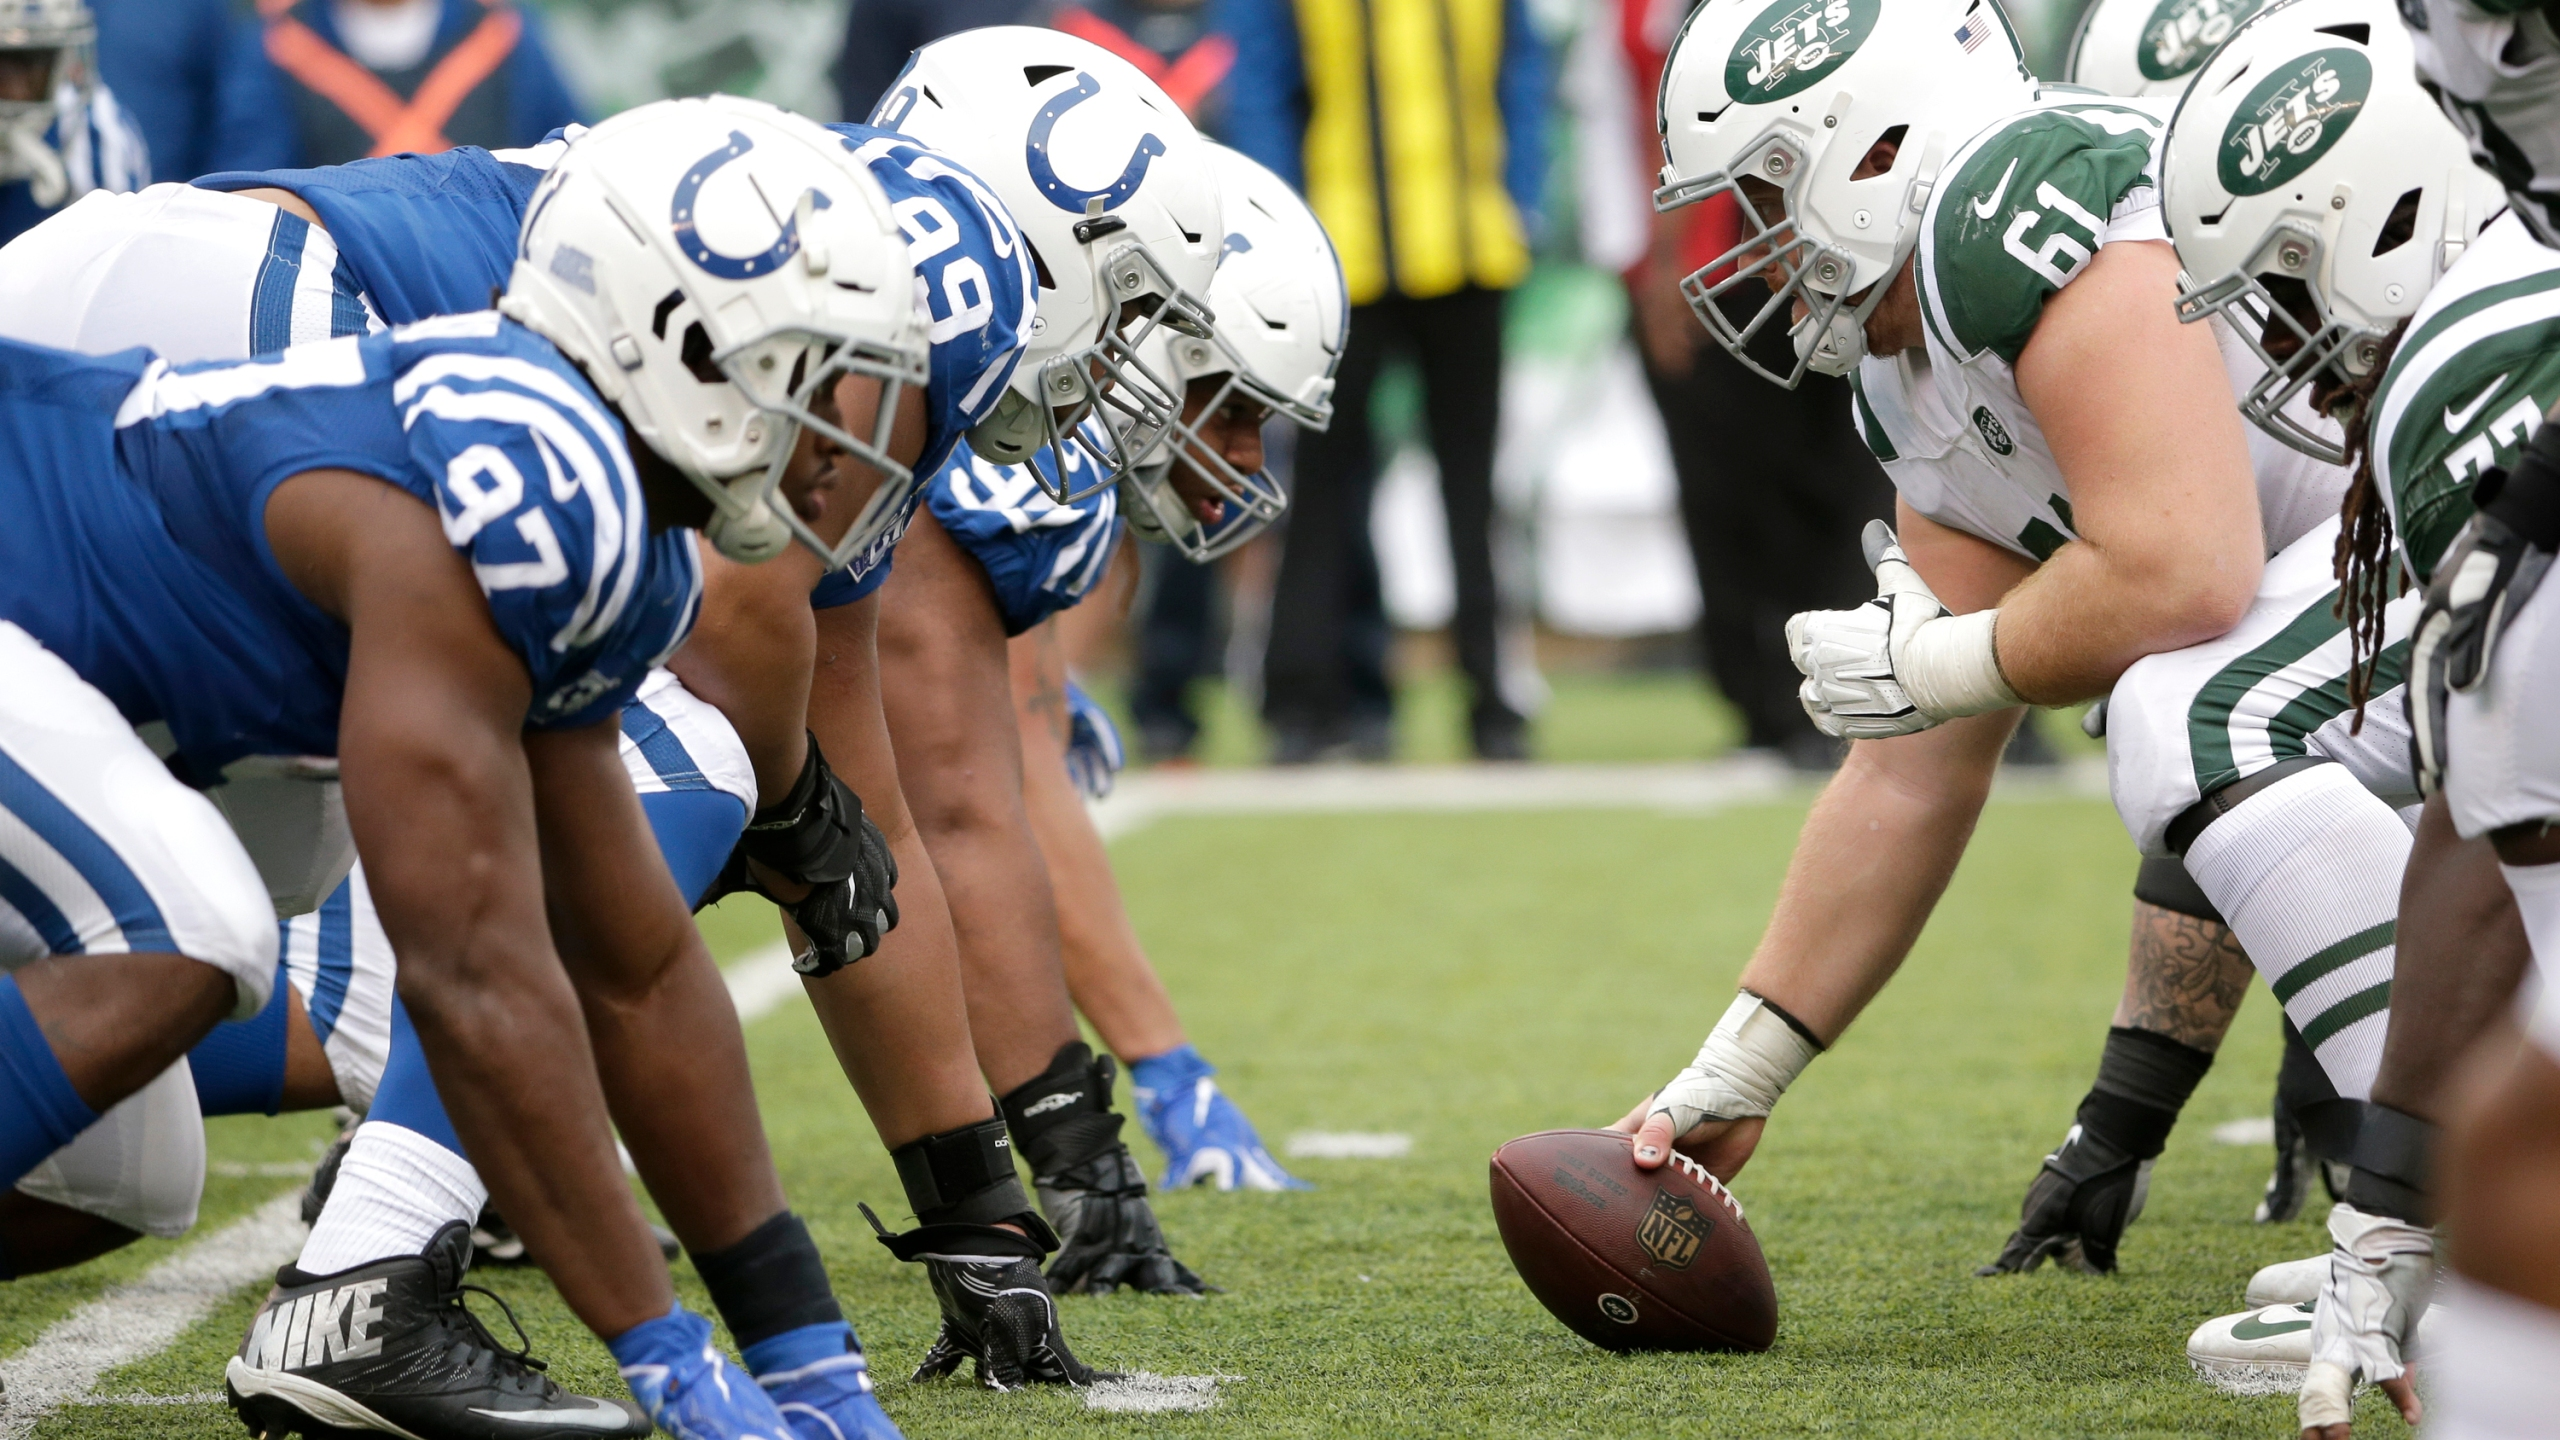 Colts Jets Football_1550011529861